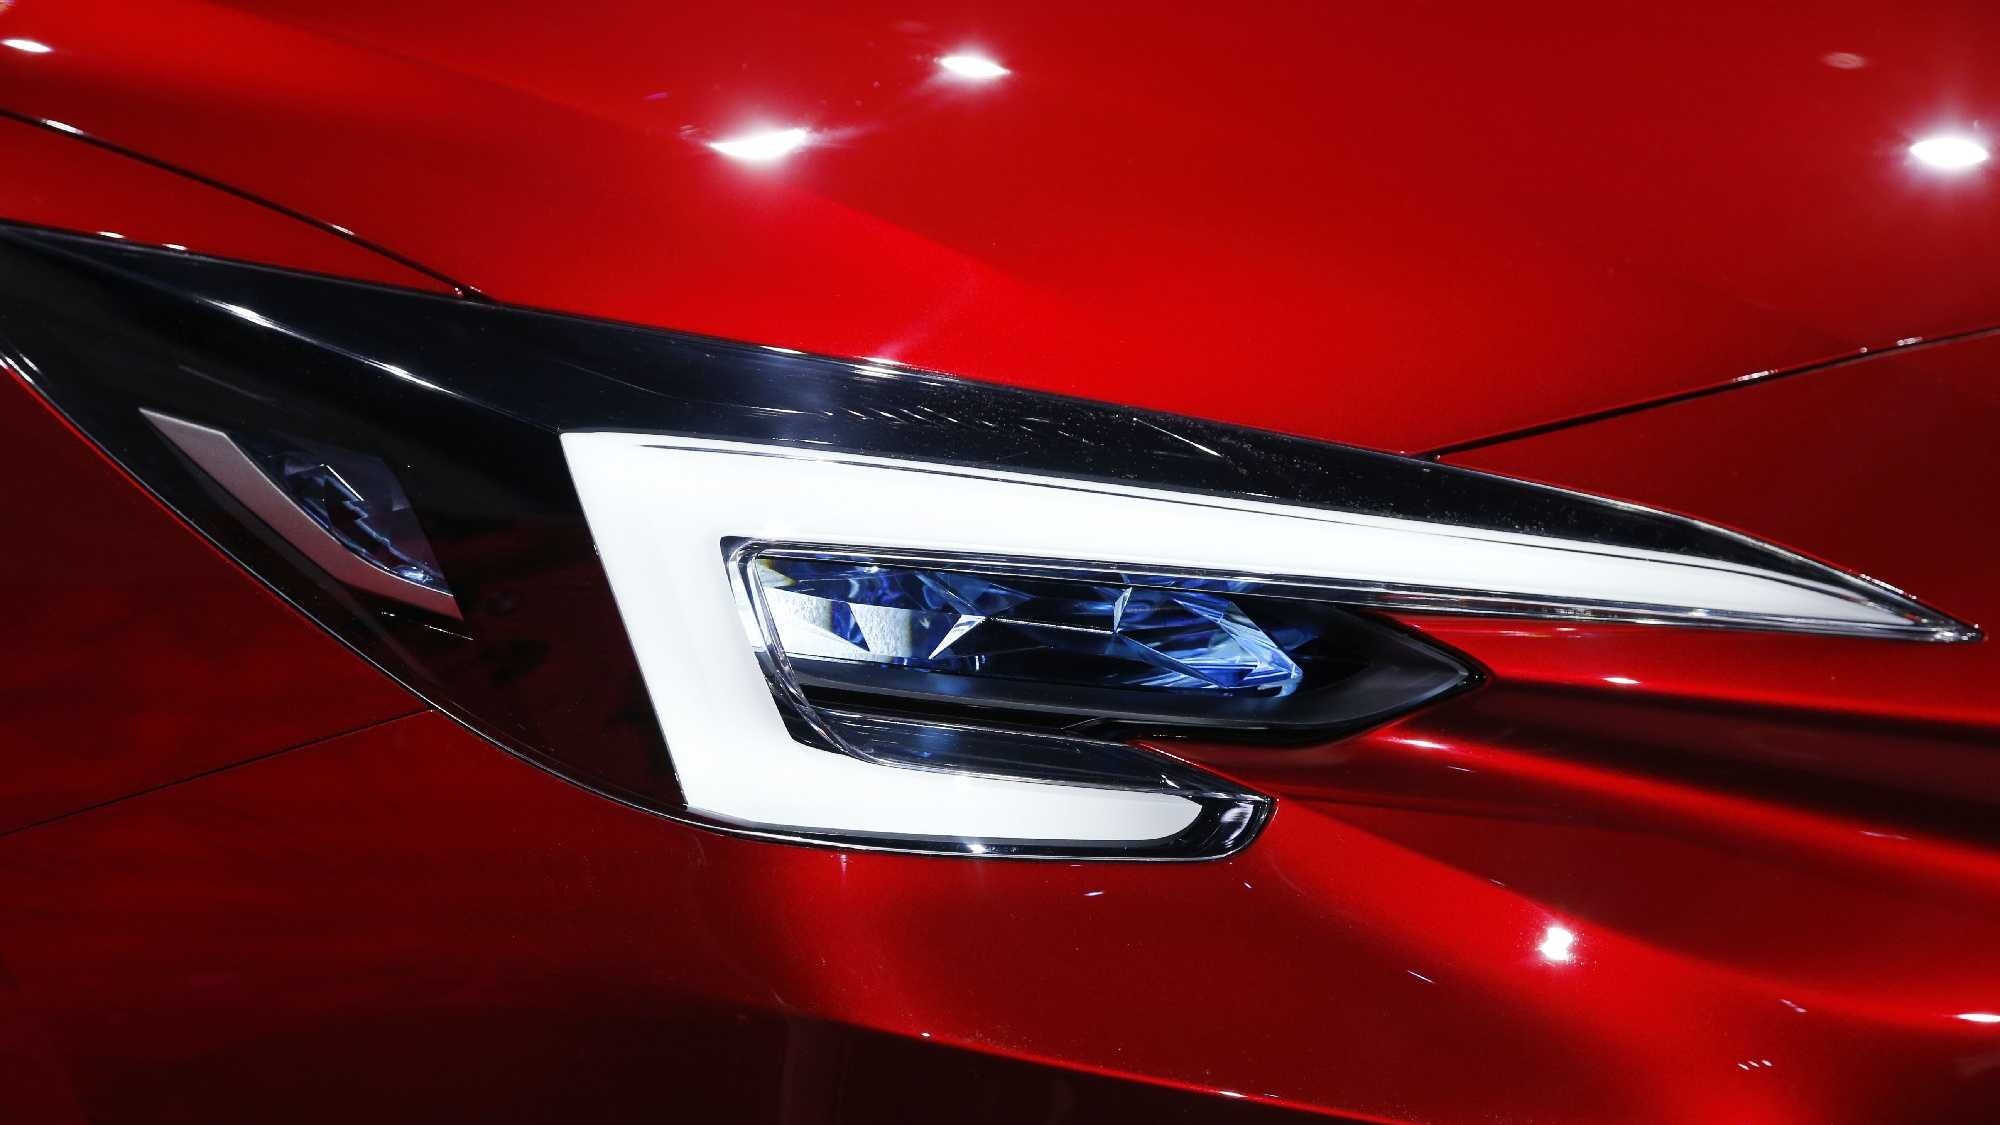 A headlight from the Subaru Impreza Sedan Concept is on display during the Los Angeles Auto Show Wednesday, Nov. 18, 2015, in Los Angeles.